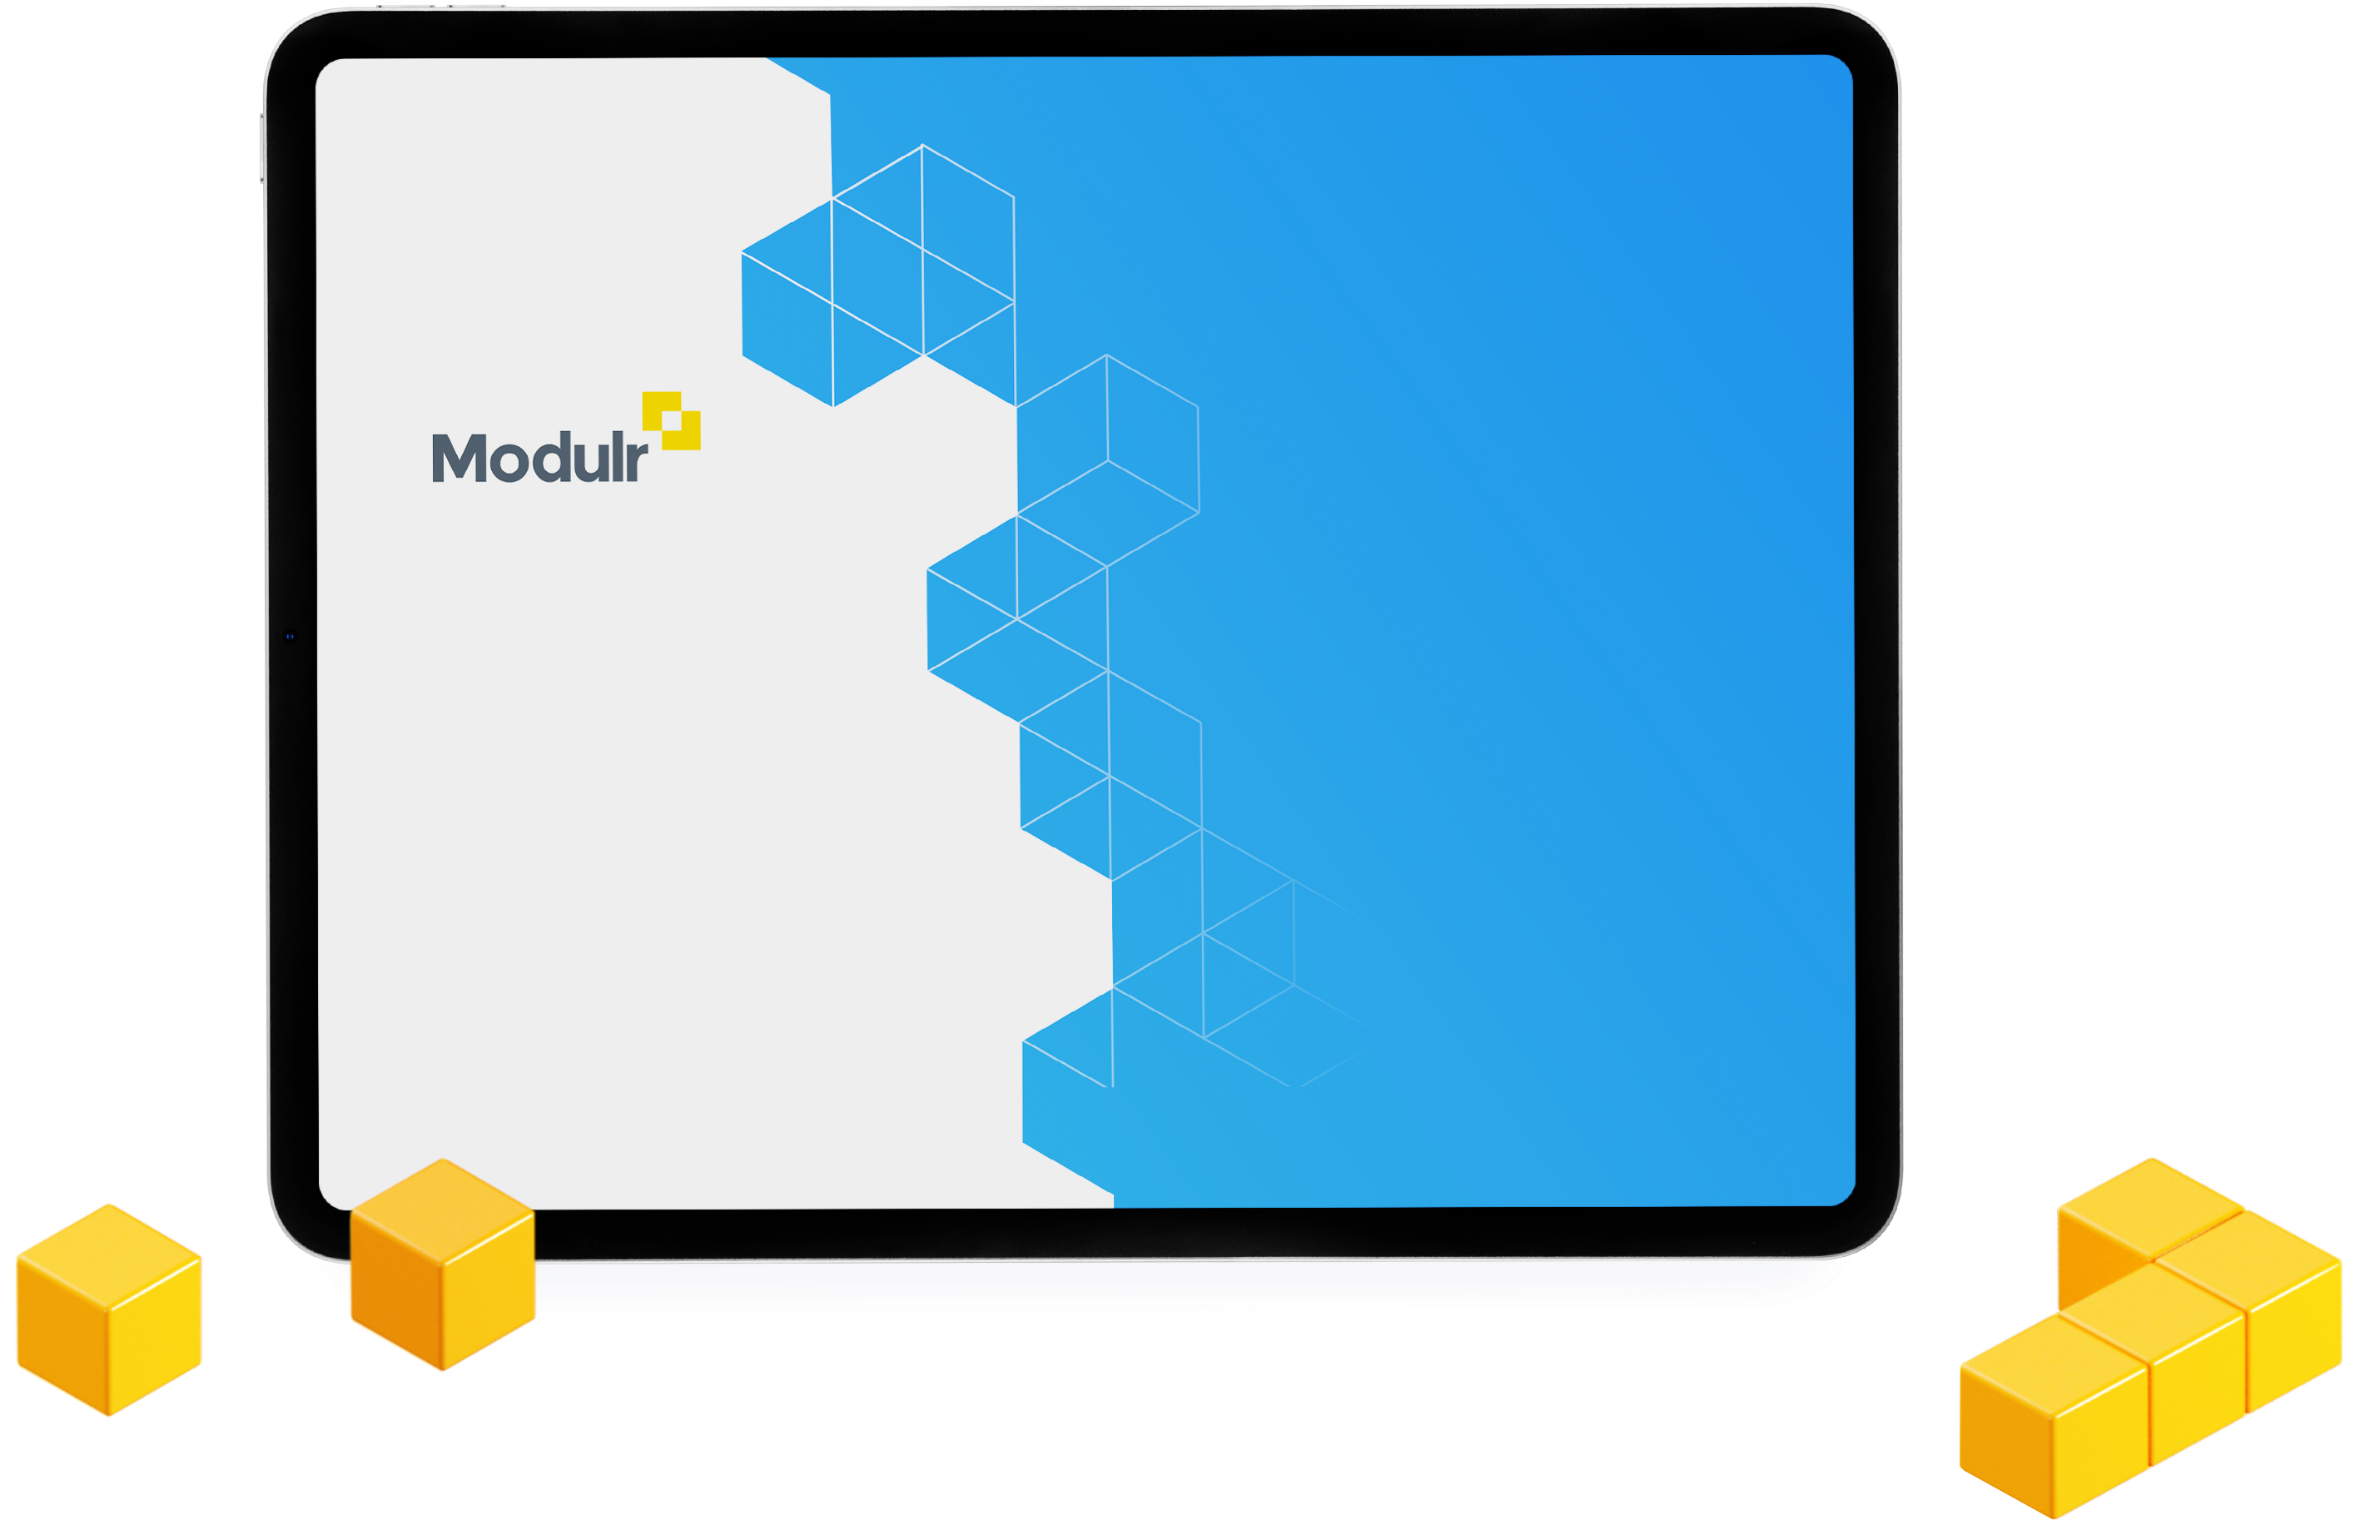 Modulr_eBook_Placeholder_2